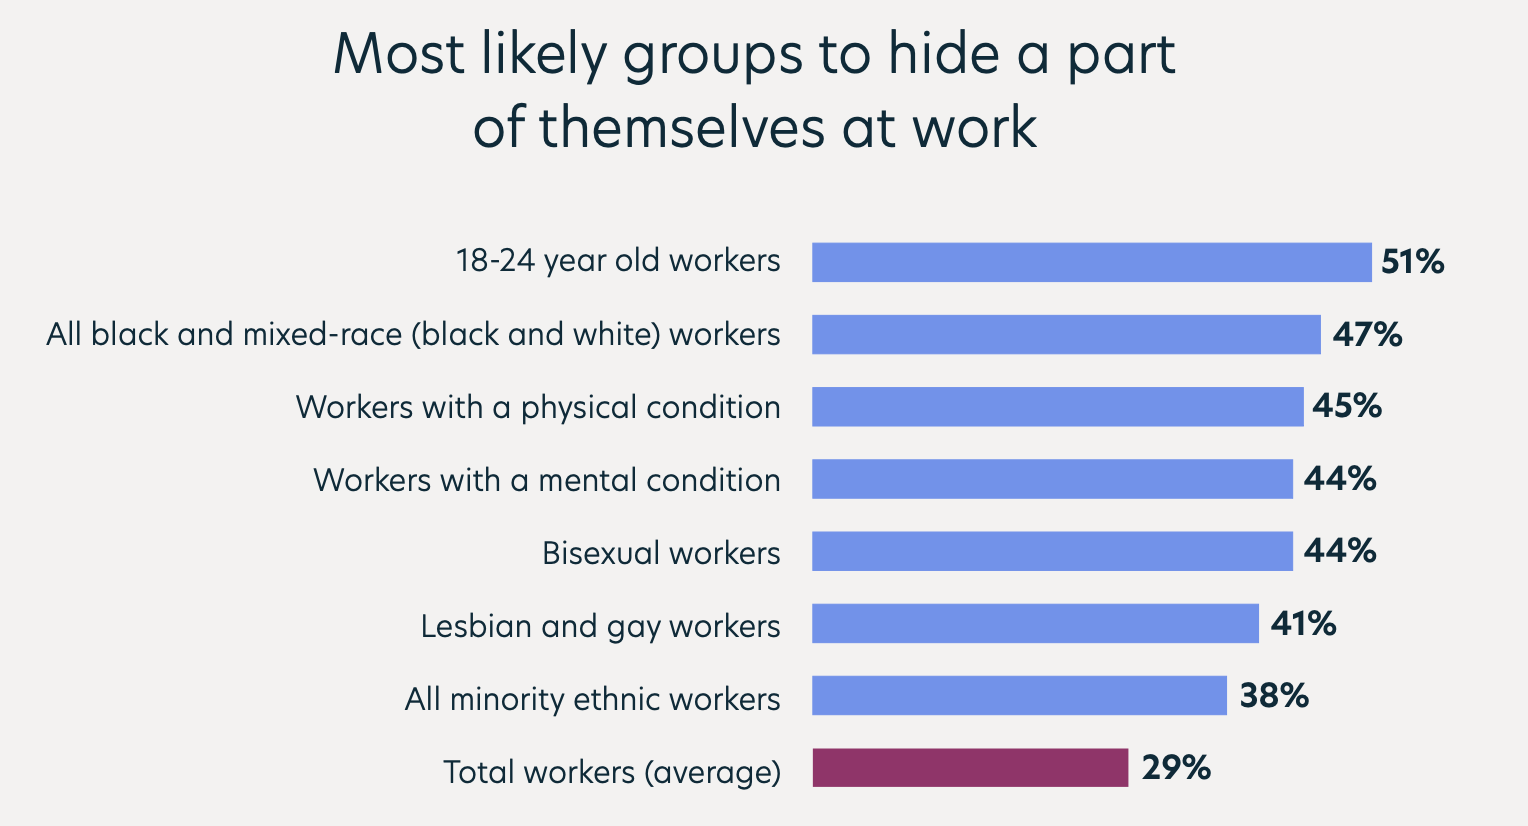 indeed time for change report most likely groups to hide a part of themselves at work LGBT diversity in the workplace